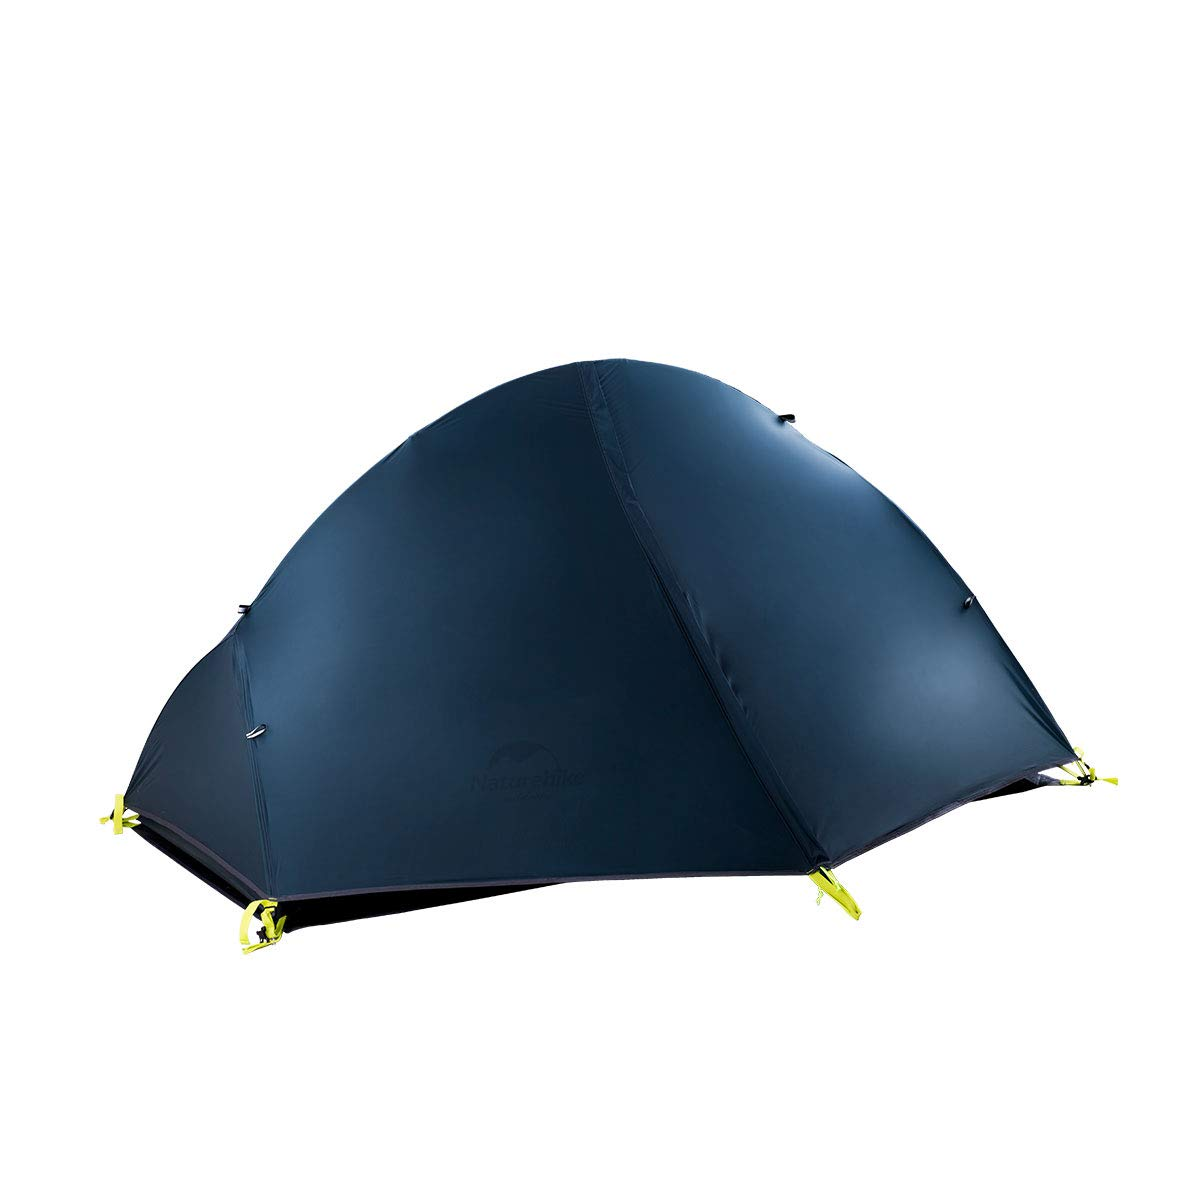 Naturehike Backpacking Tent for 1 Person Camping Hiking Lightweight Waterproof one Person Tent with Footprint (20D Dark Blue) by Naturehike